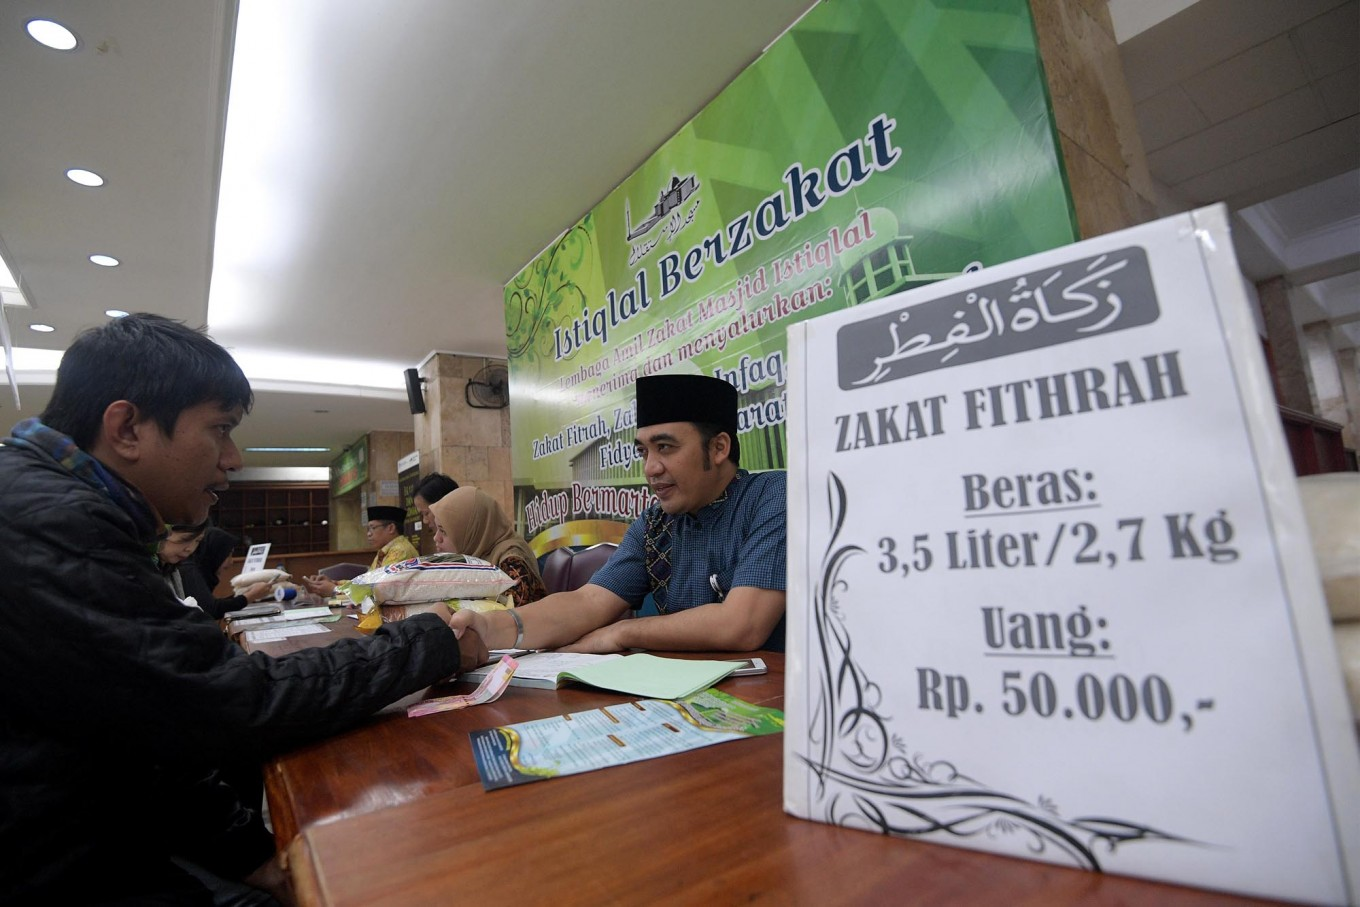 Controversy over 'zakat' plan shows lack of trust